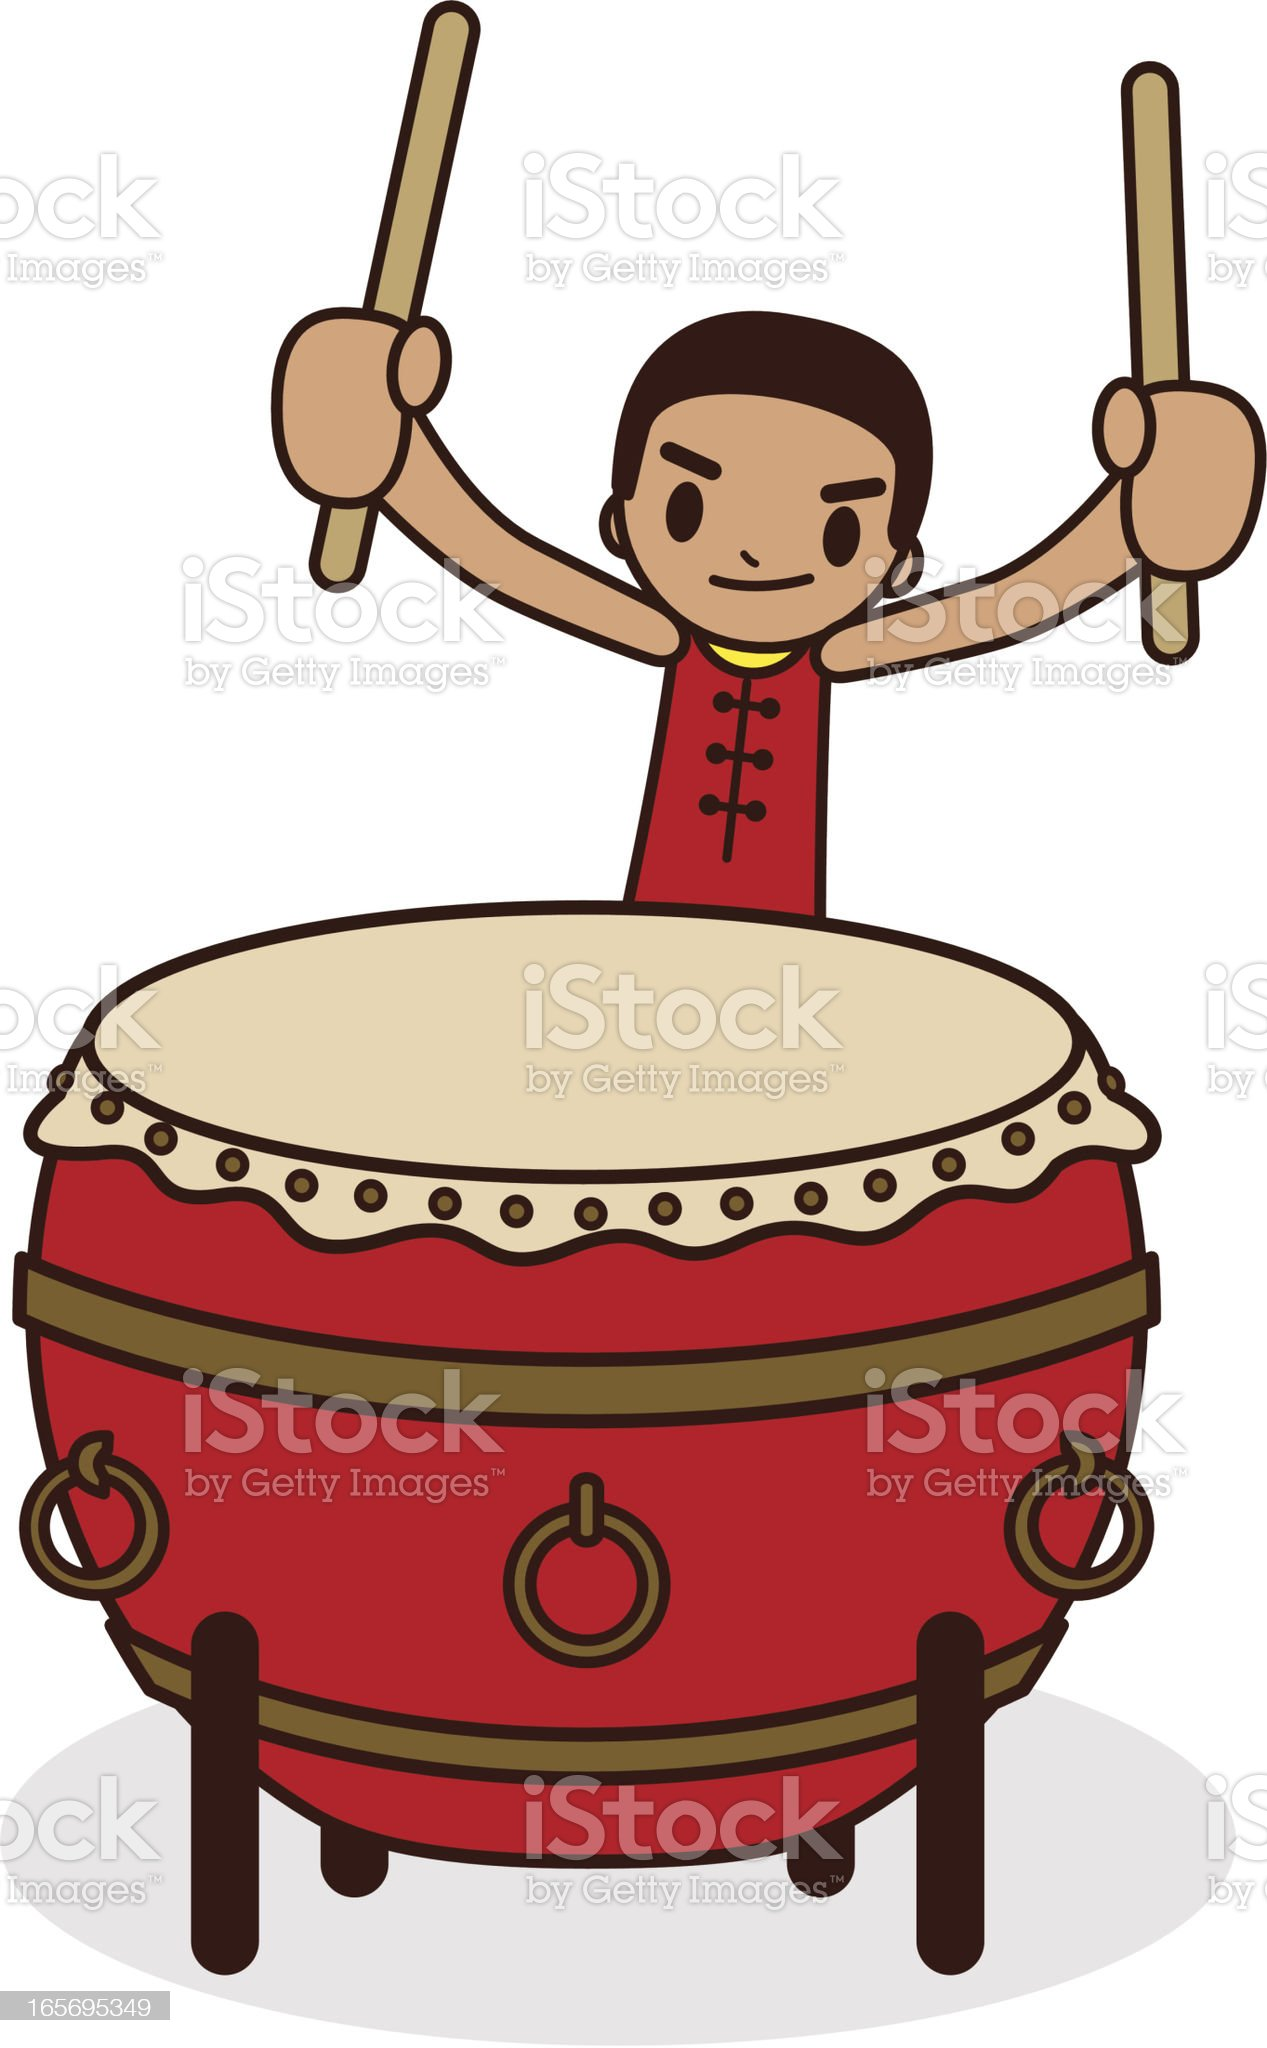 Chinese Drummer With a Large Drum royalty-free stock vector art